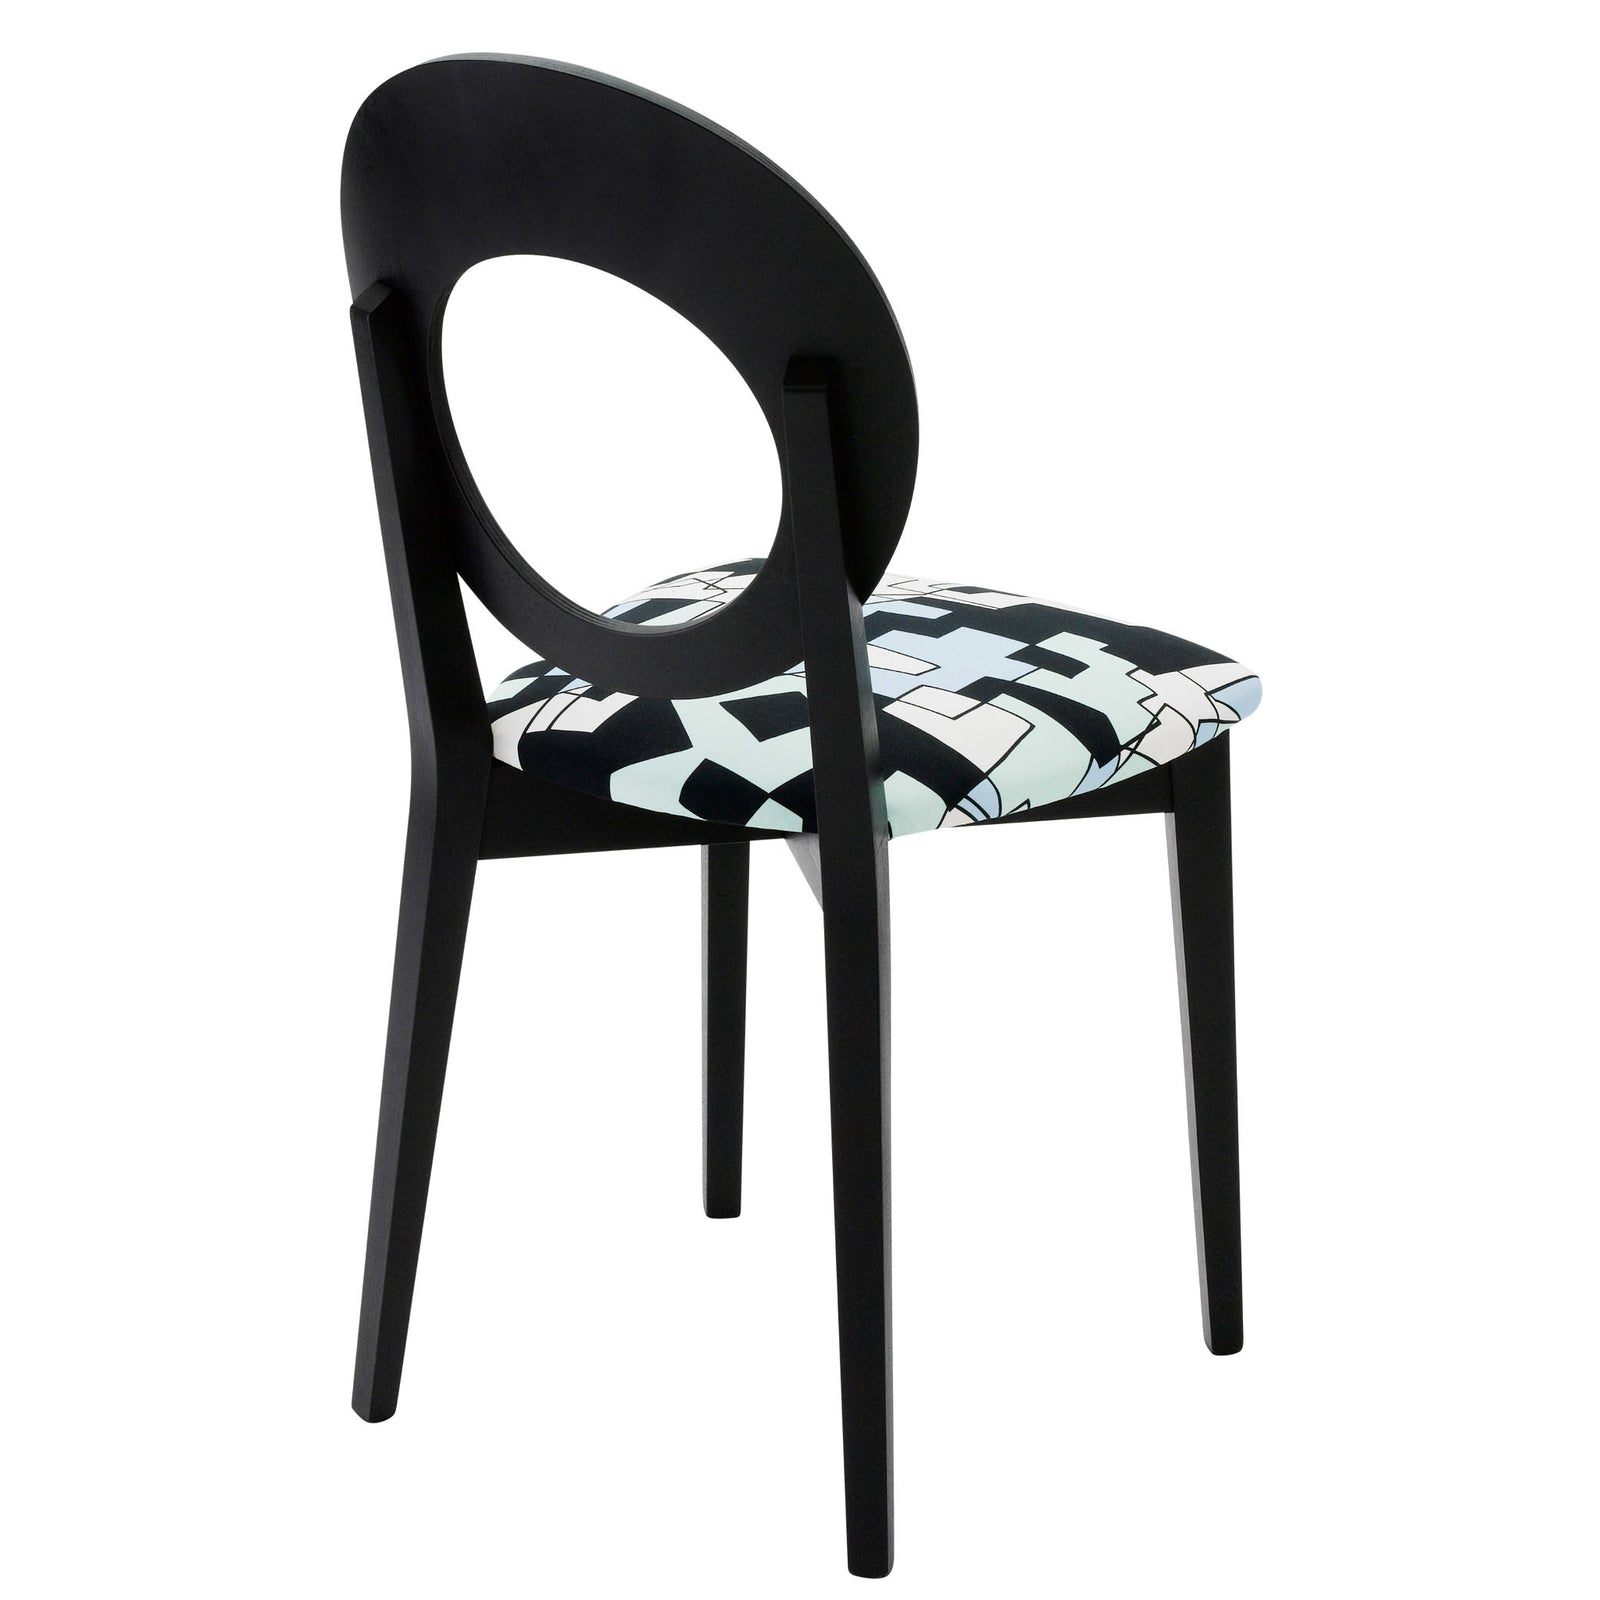 Rear  view of the Chloe designer dining chair is upholstered with the distinctive doodle design by Jon Burgerman and finished in Jack Black eggshell.